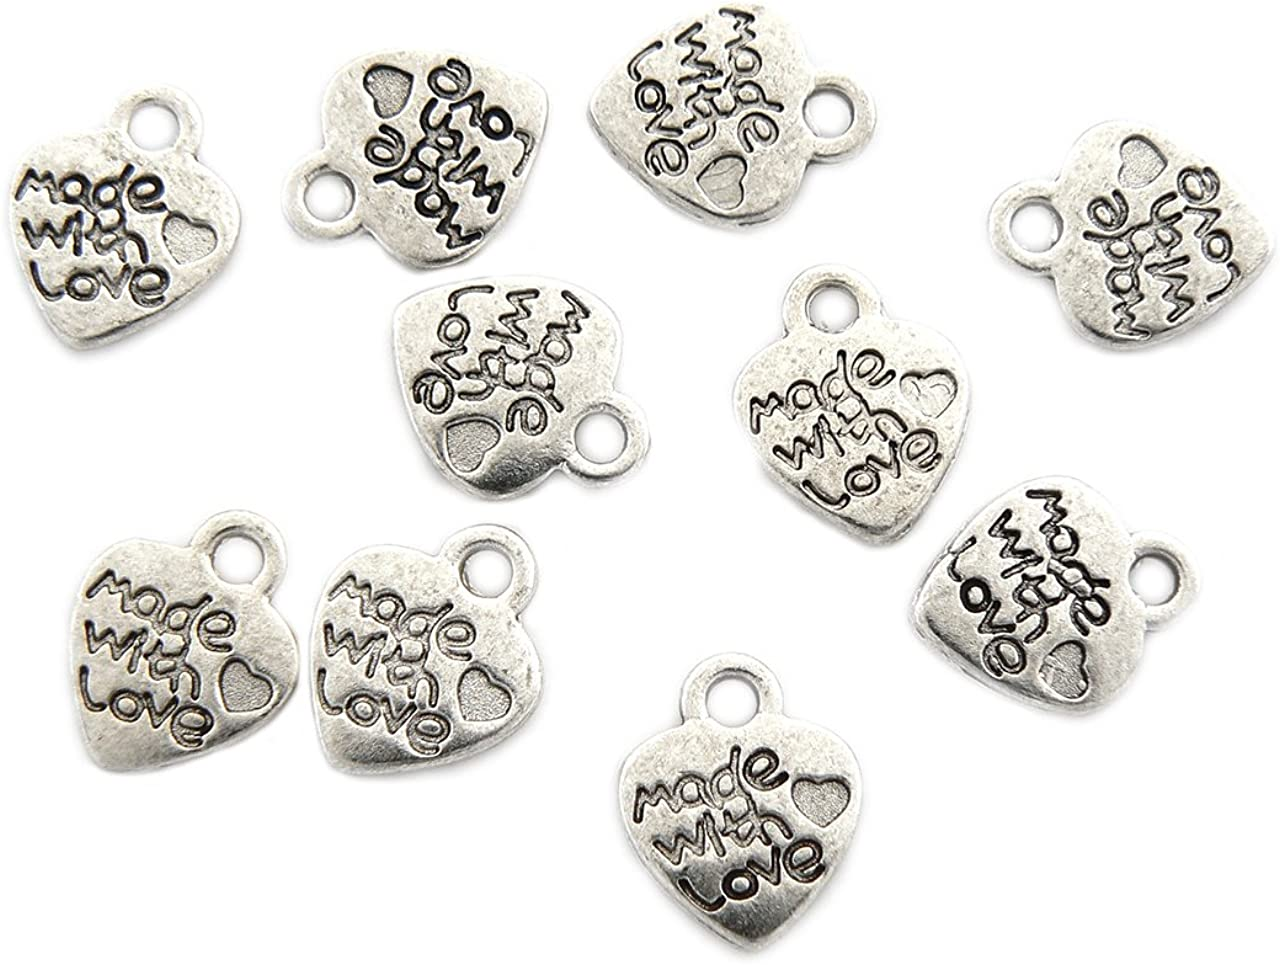 10 silver plated heart charms